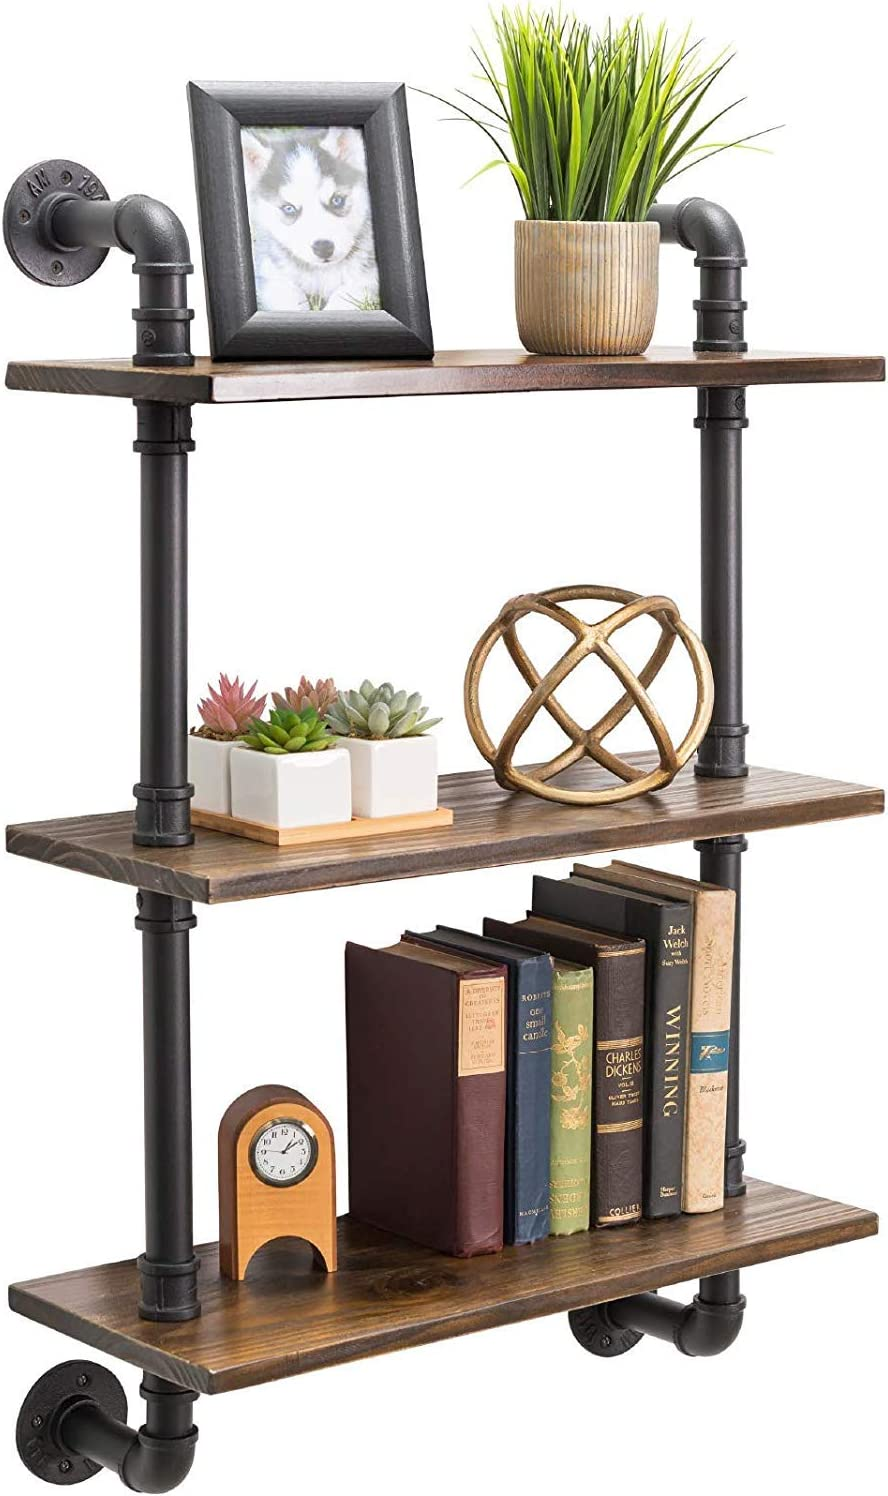 Industrial Pipe Shelves with Wood 3-Tiers, Rustic Wall Mount Shelf, Metal Hung Bracket Bookshelf, DIY Storage Shelving Floating Shelves (32 inches)